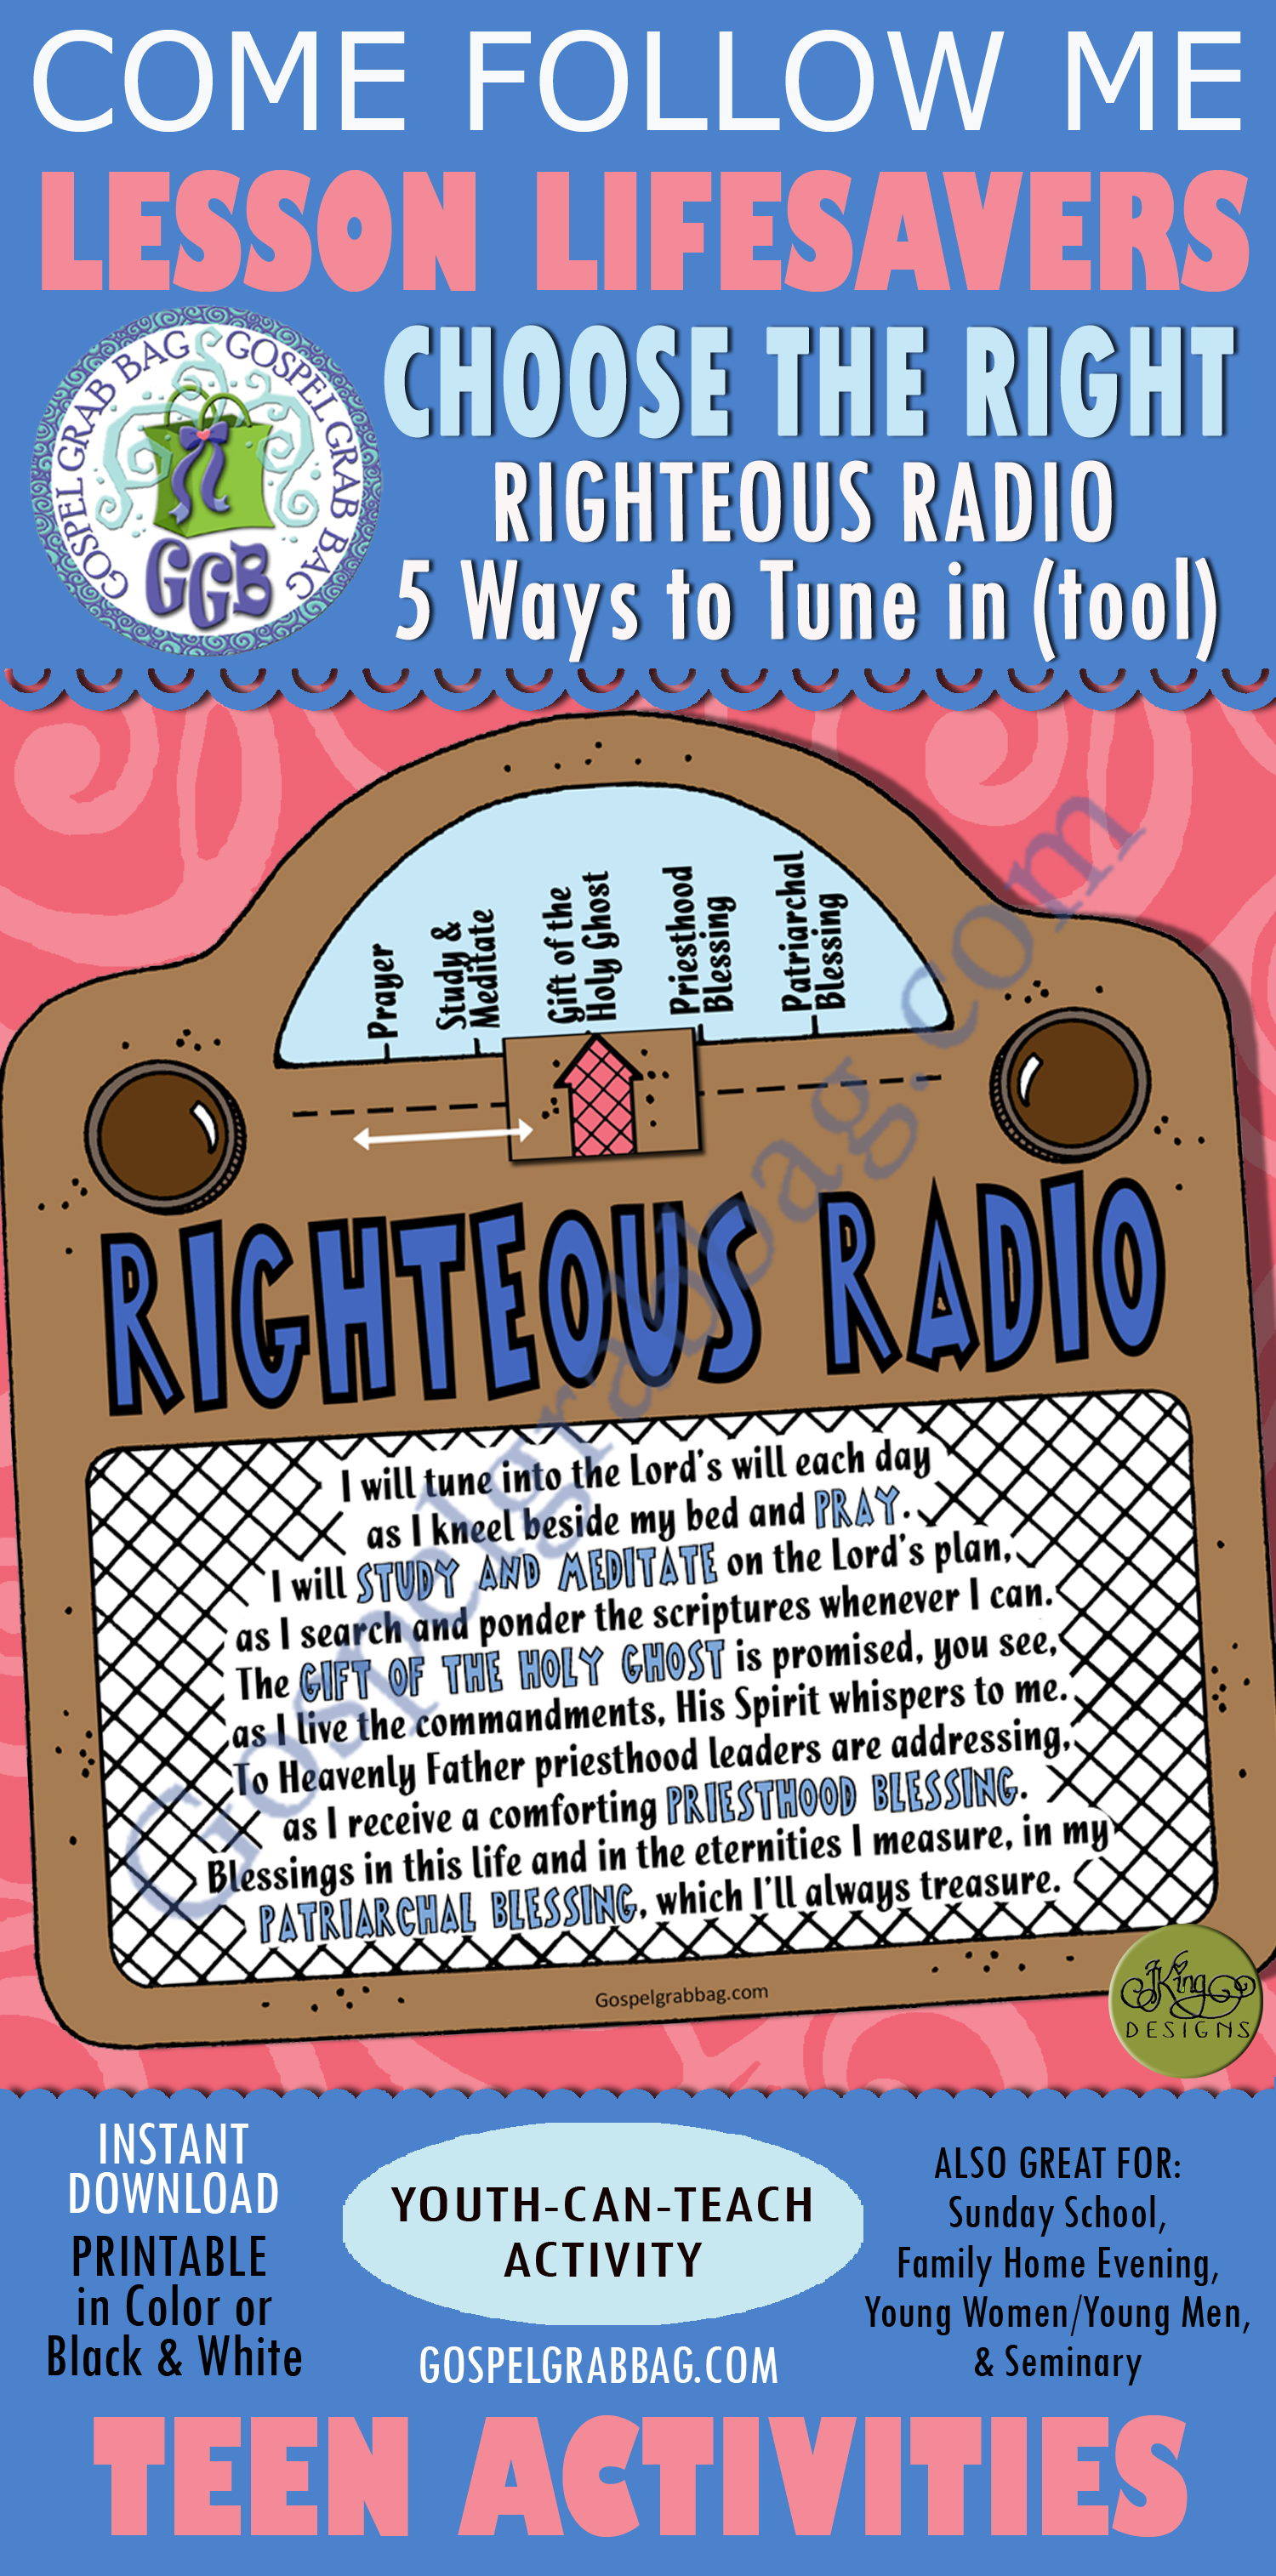 Choices, Follow Prophet: LESSON LIFESAVER Activity: Righteous Radio 5-Way  Tune In tool, Come Follow Me lesson handout - Gospel Grab Bag